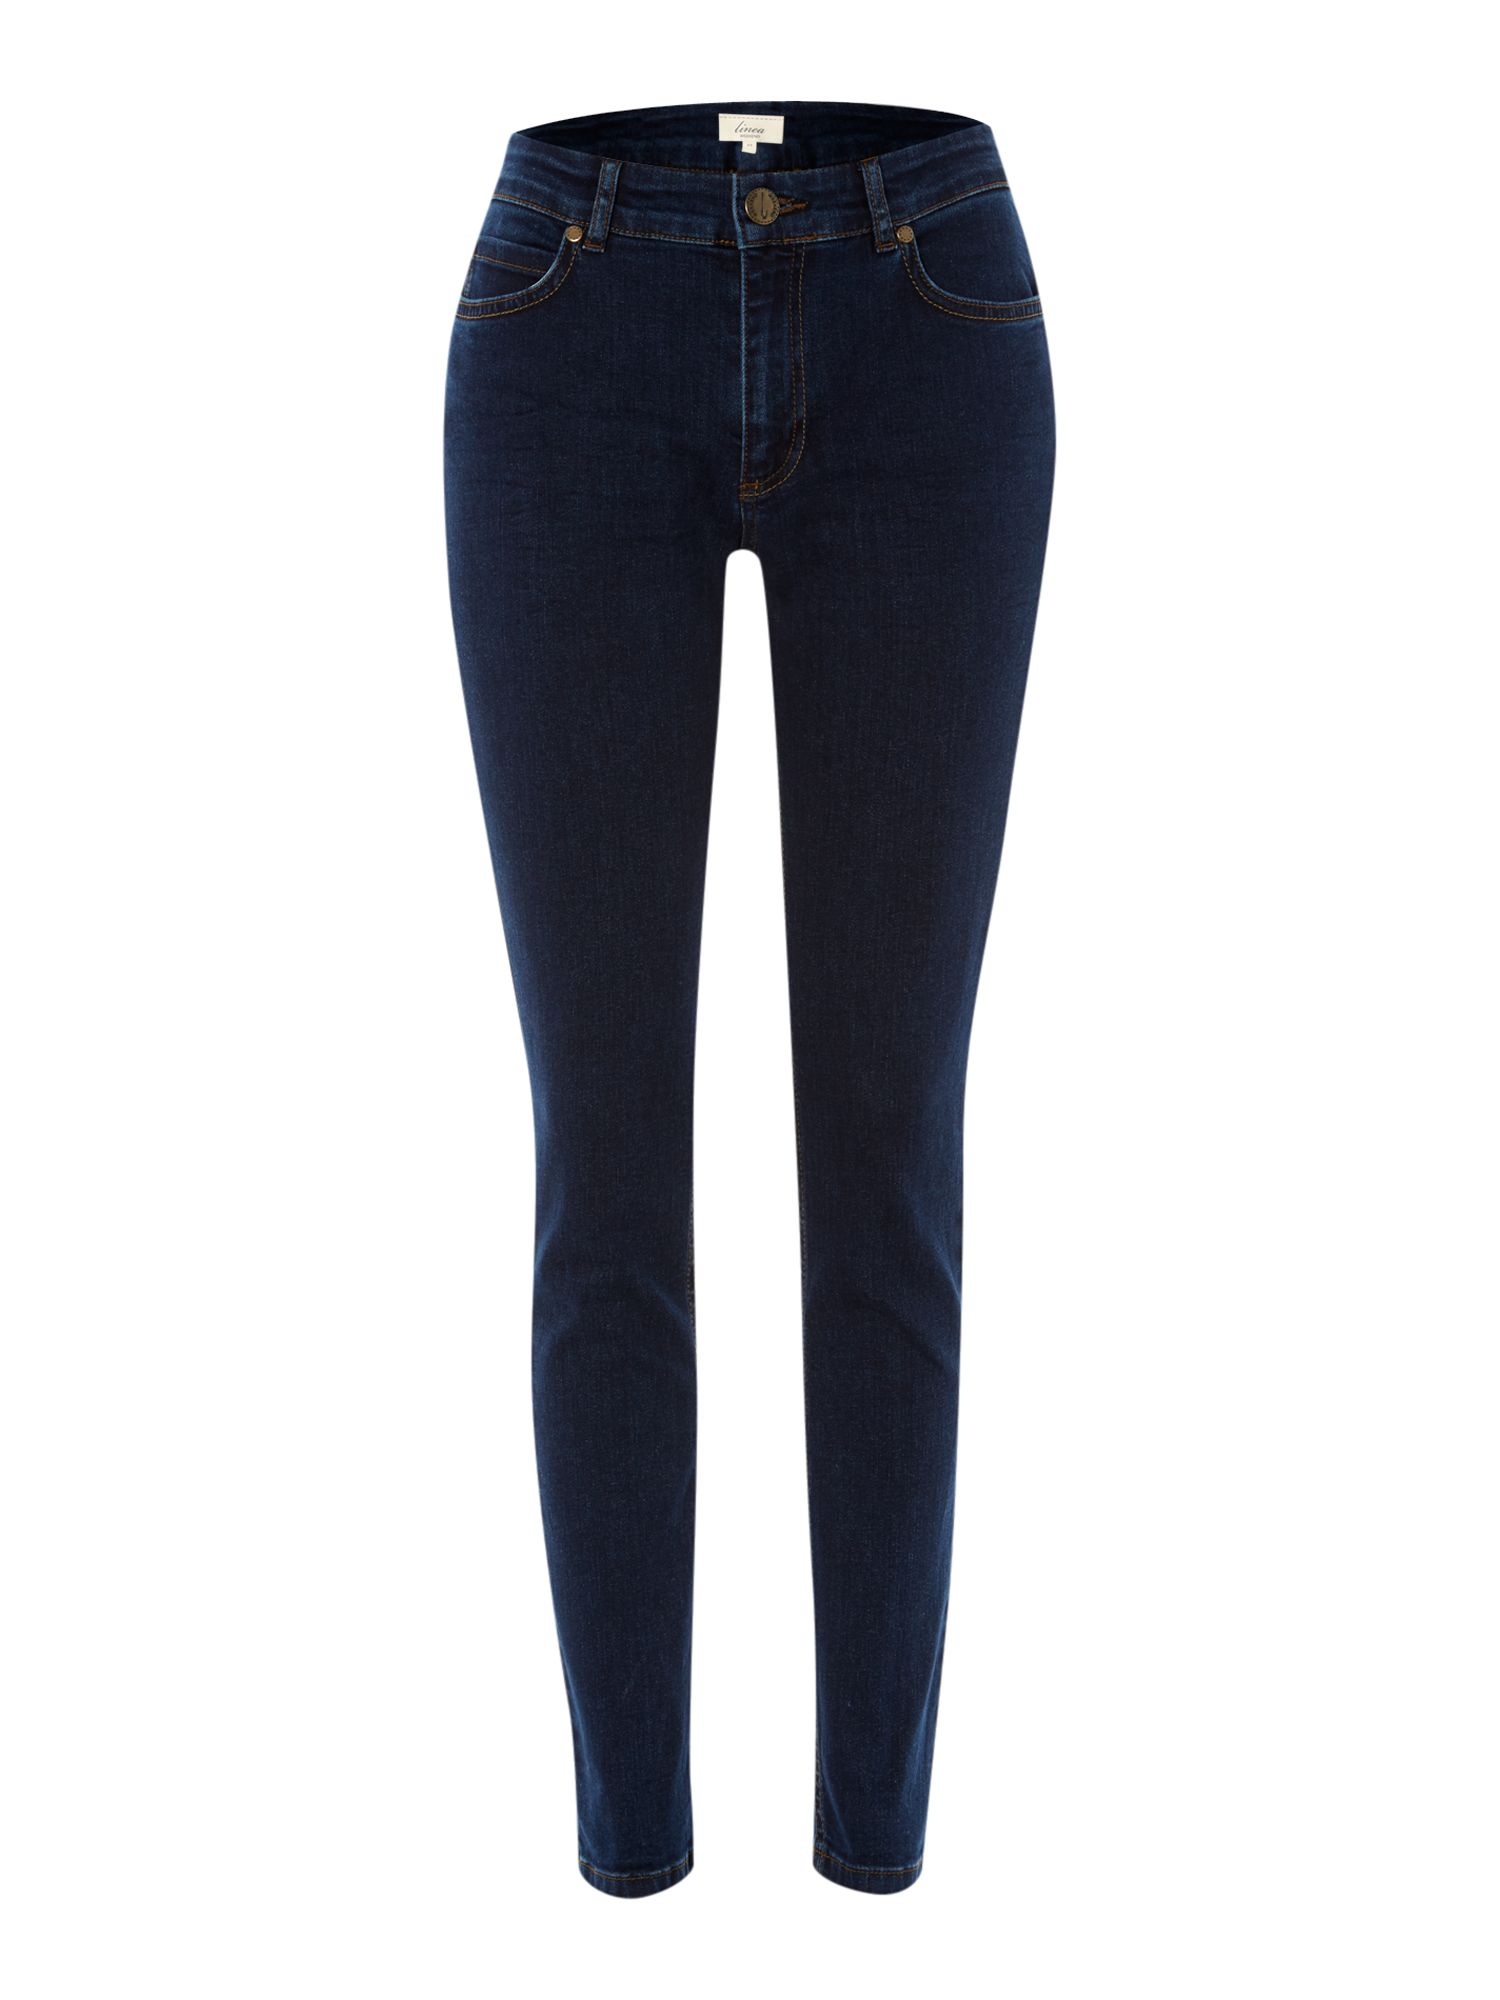 Ladies dark indigo slim leg jeans